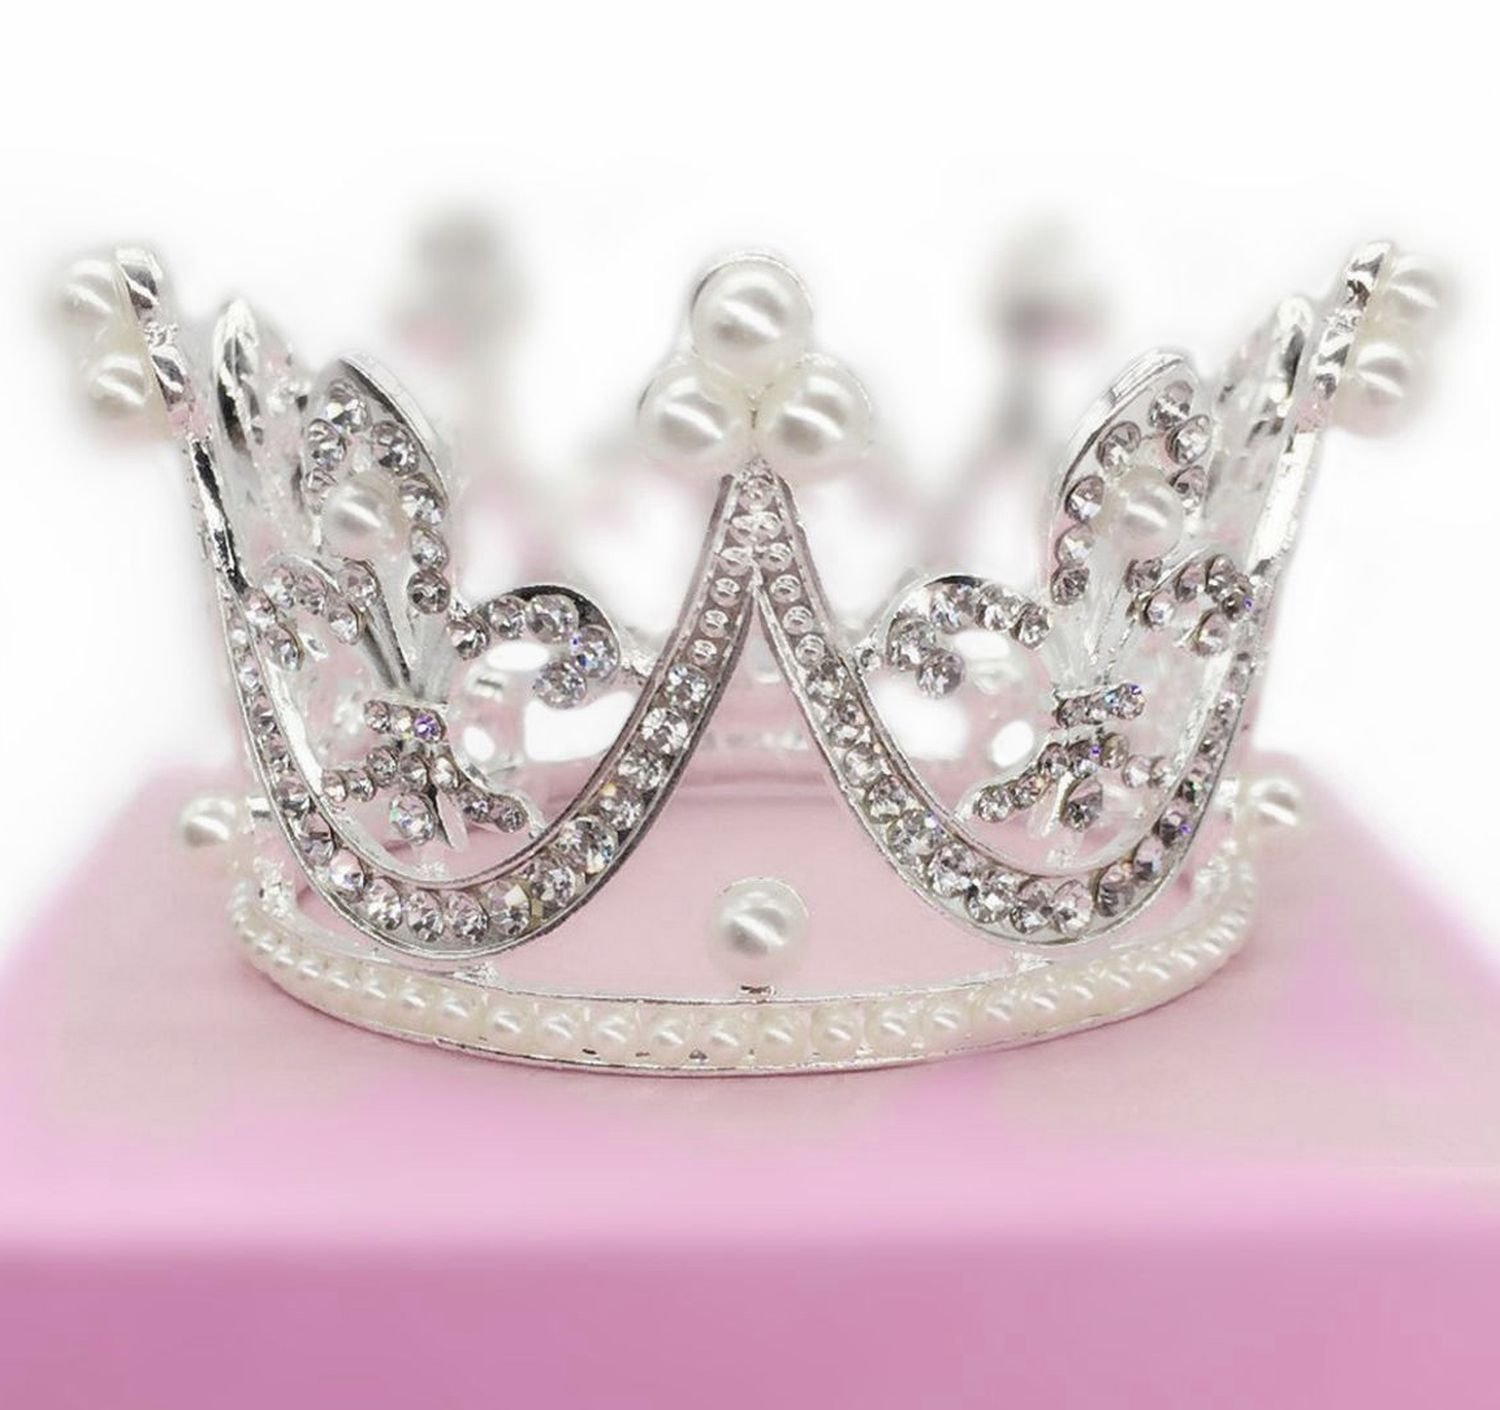 Round Mini Rhinestone Crown Pearl Crystal Princess Crown Bridal Wedding Newborn Baby Crown Silver